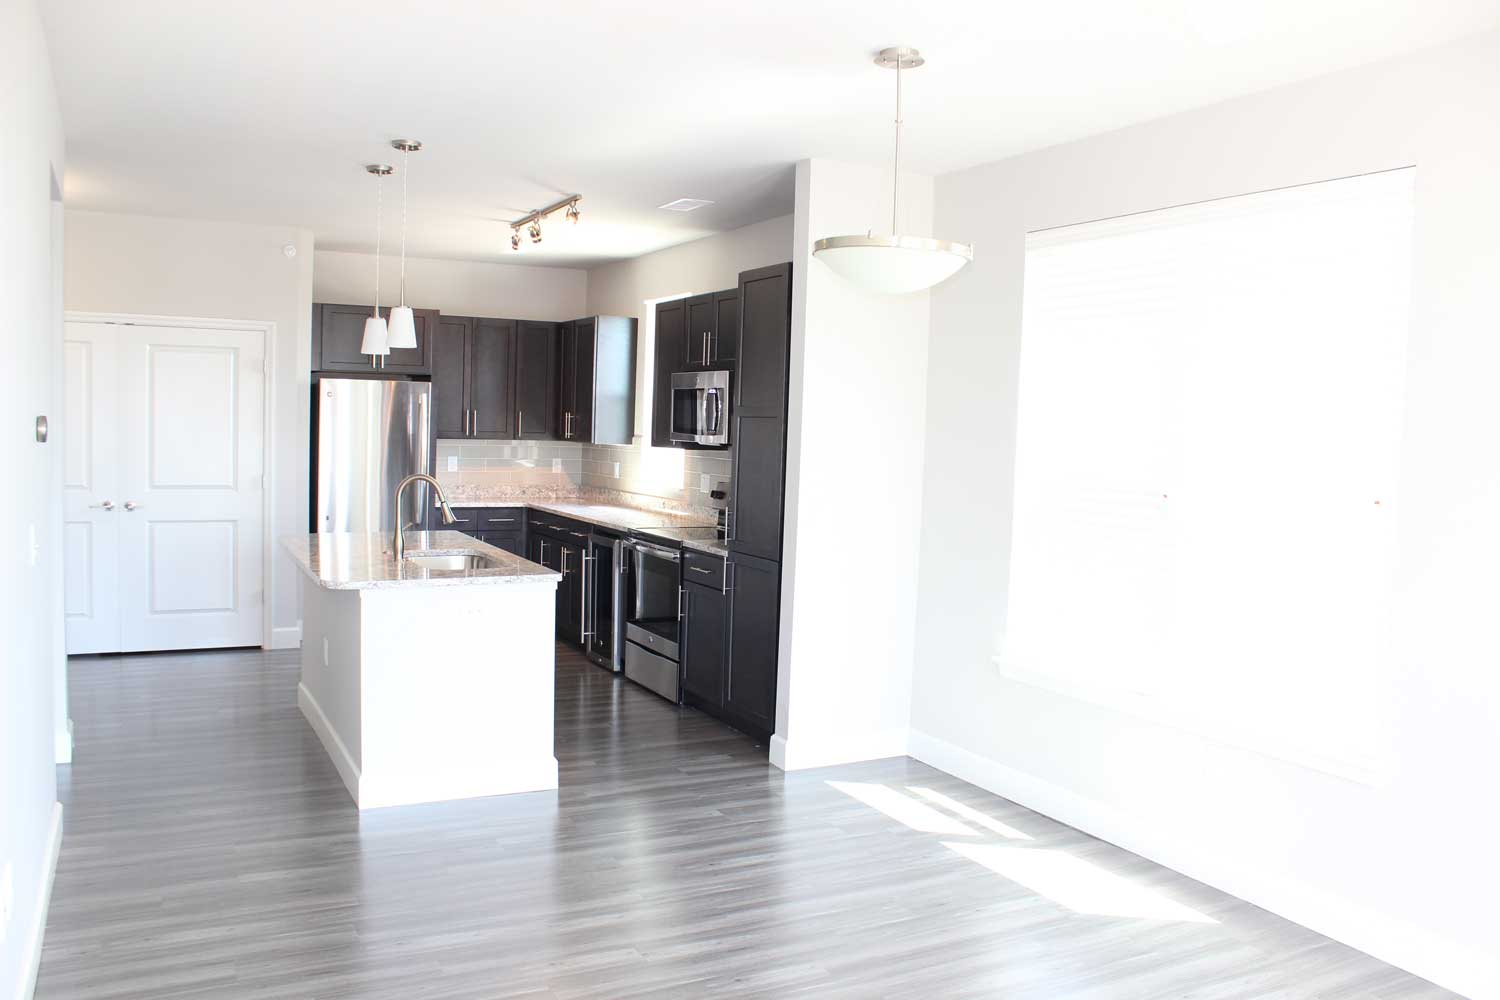 Open Concept Floor Plans at The Vue at Creve Coeur Apartments in Creve Coeur, MO